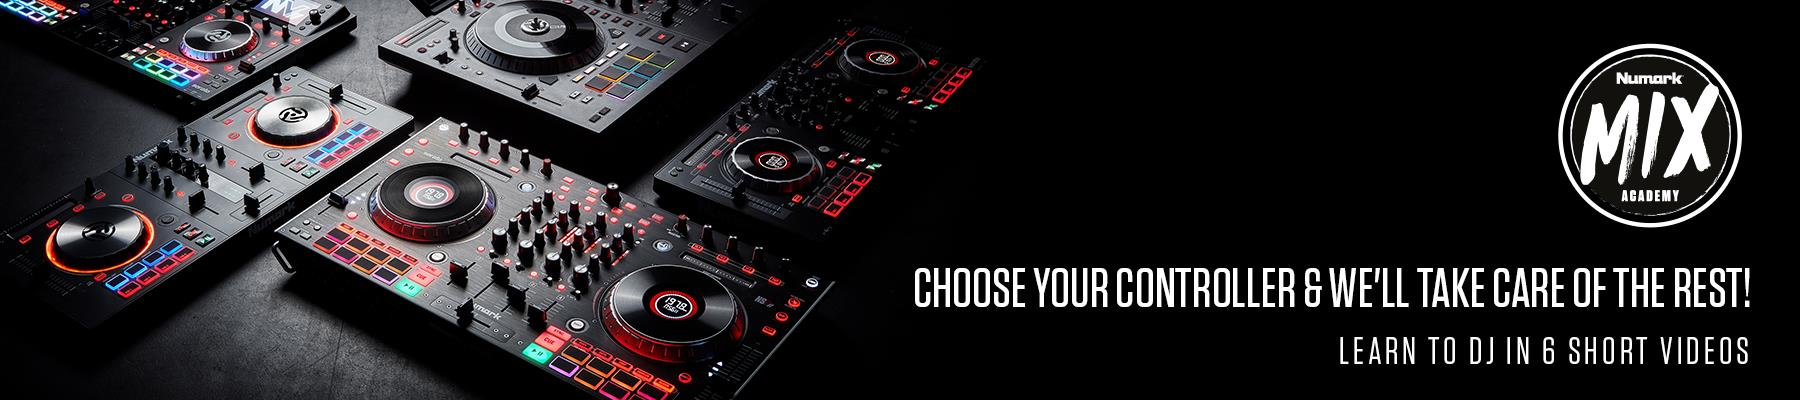 Your entry into Pro DJ performance starts here.